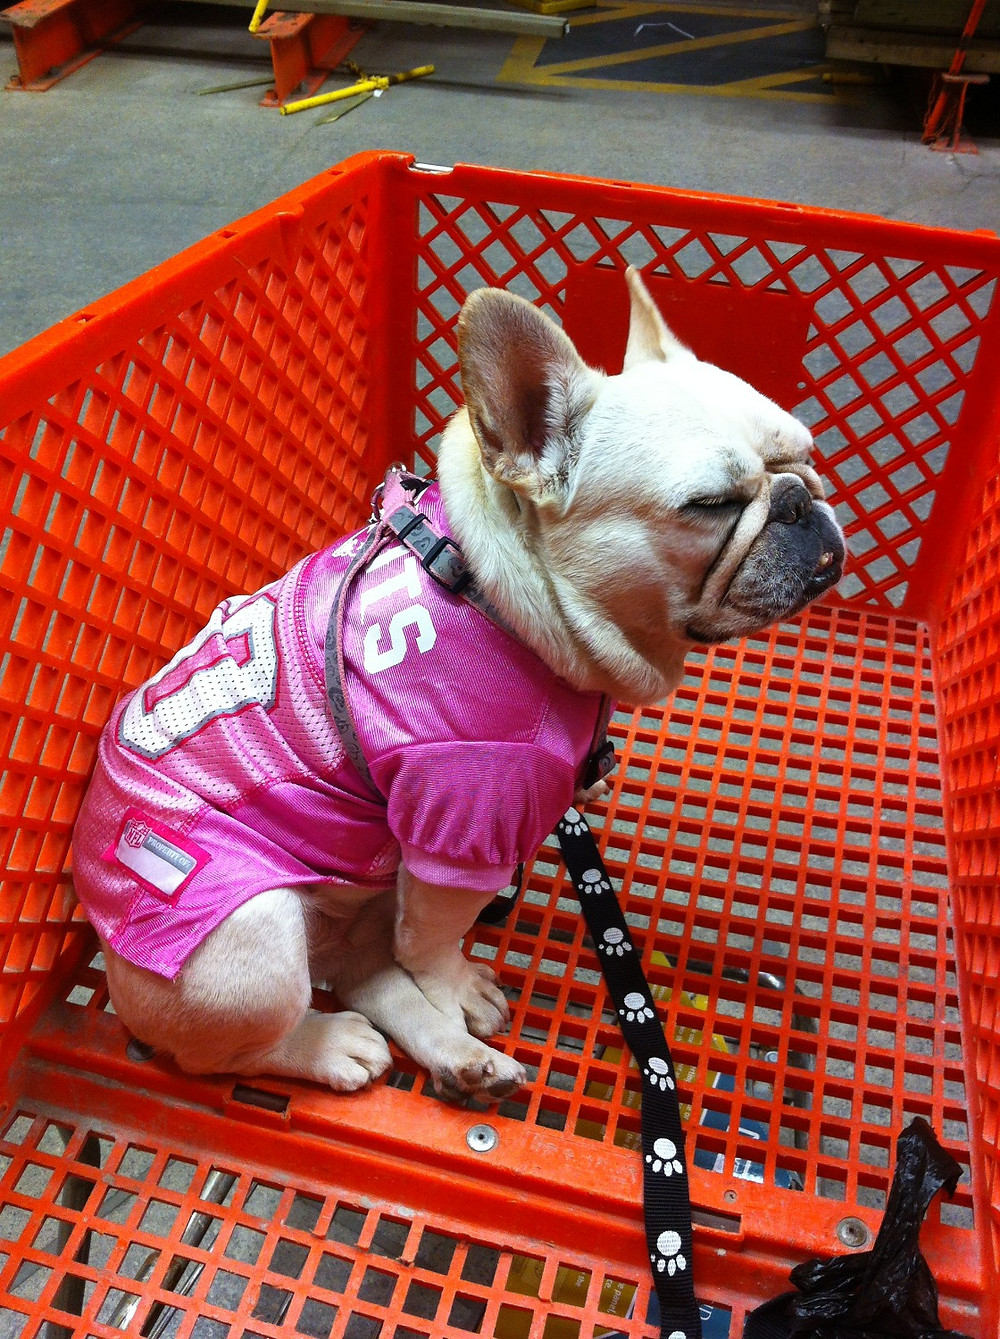 Mona, our french bulldog landscaper at Home Depot